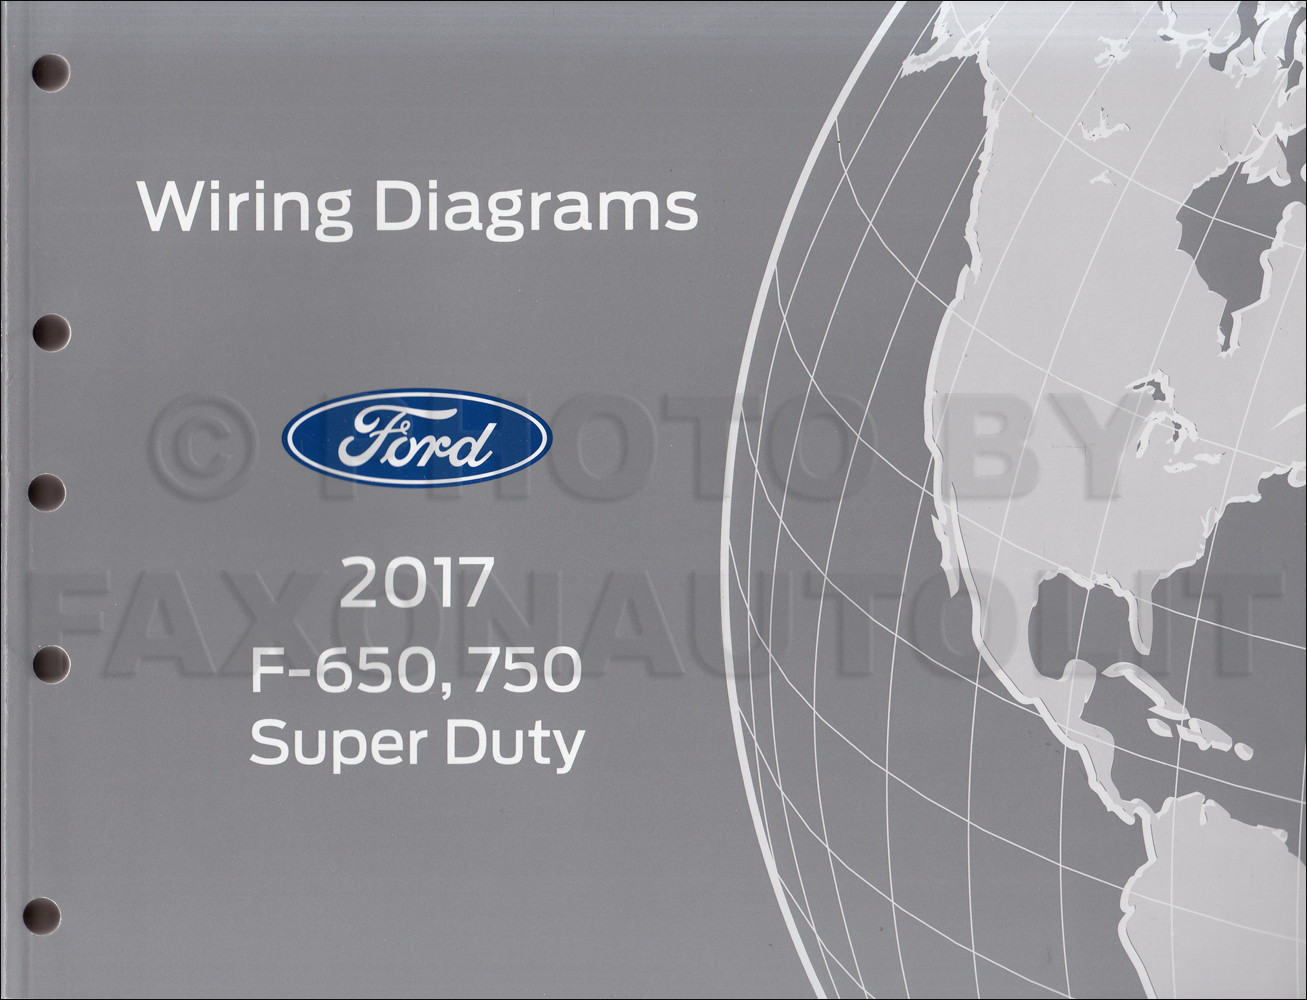 2017 Ford F-650 and F-750 Super Duty Truck Wiring Diagram Manual Original | Ford F650 Super Duty Wire Diagram |  | Faxon Auto Literature